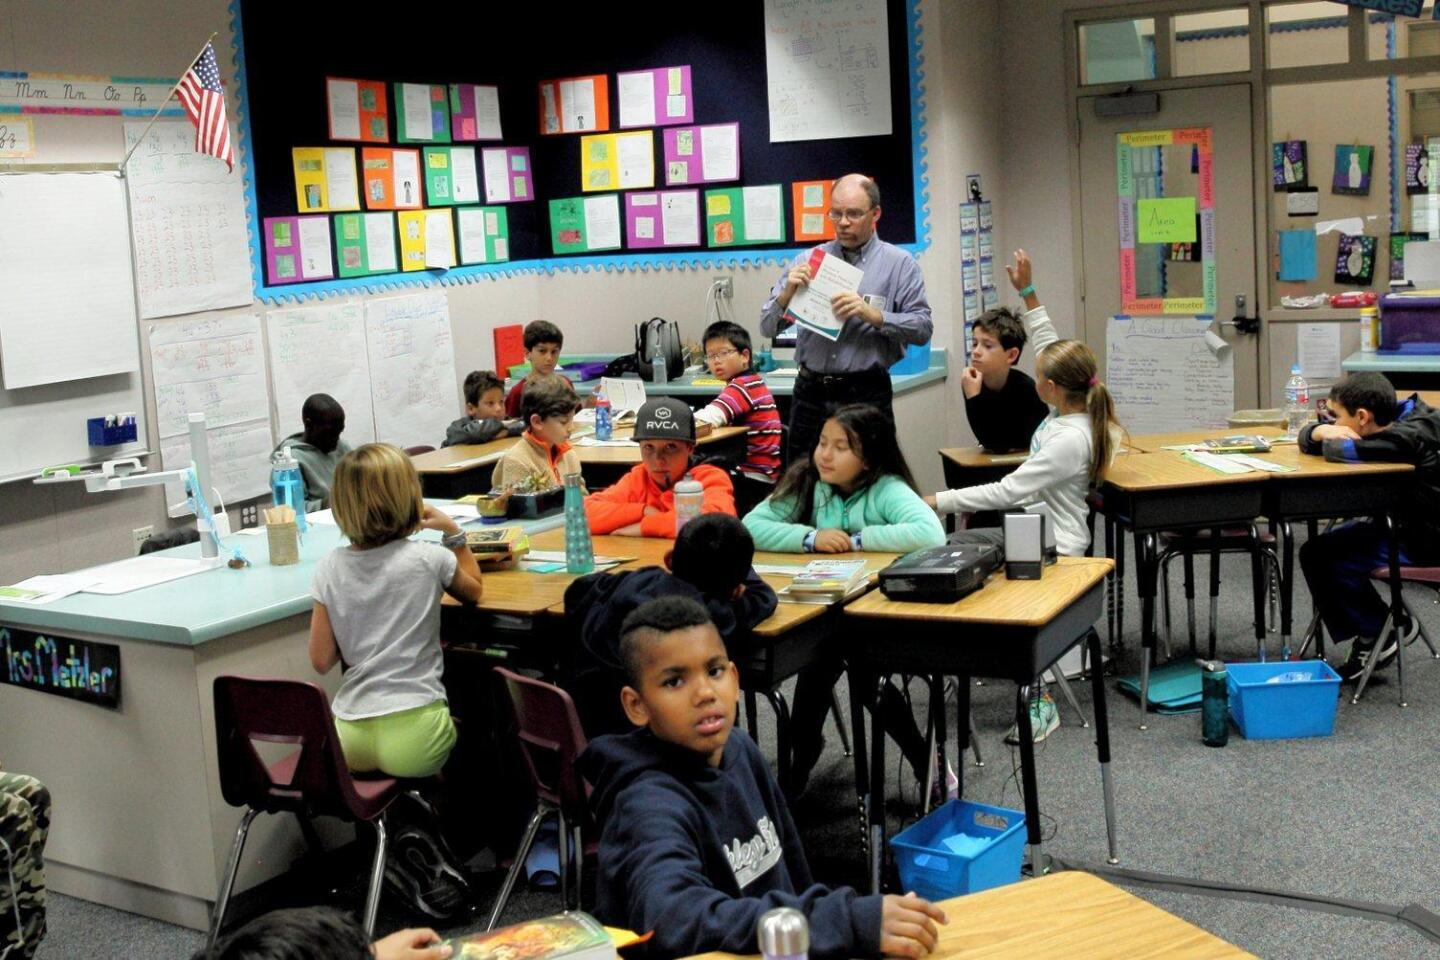 Publications director and editor Glenn Collins speaks to Mrs. Metzler's 4th grade class